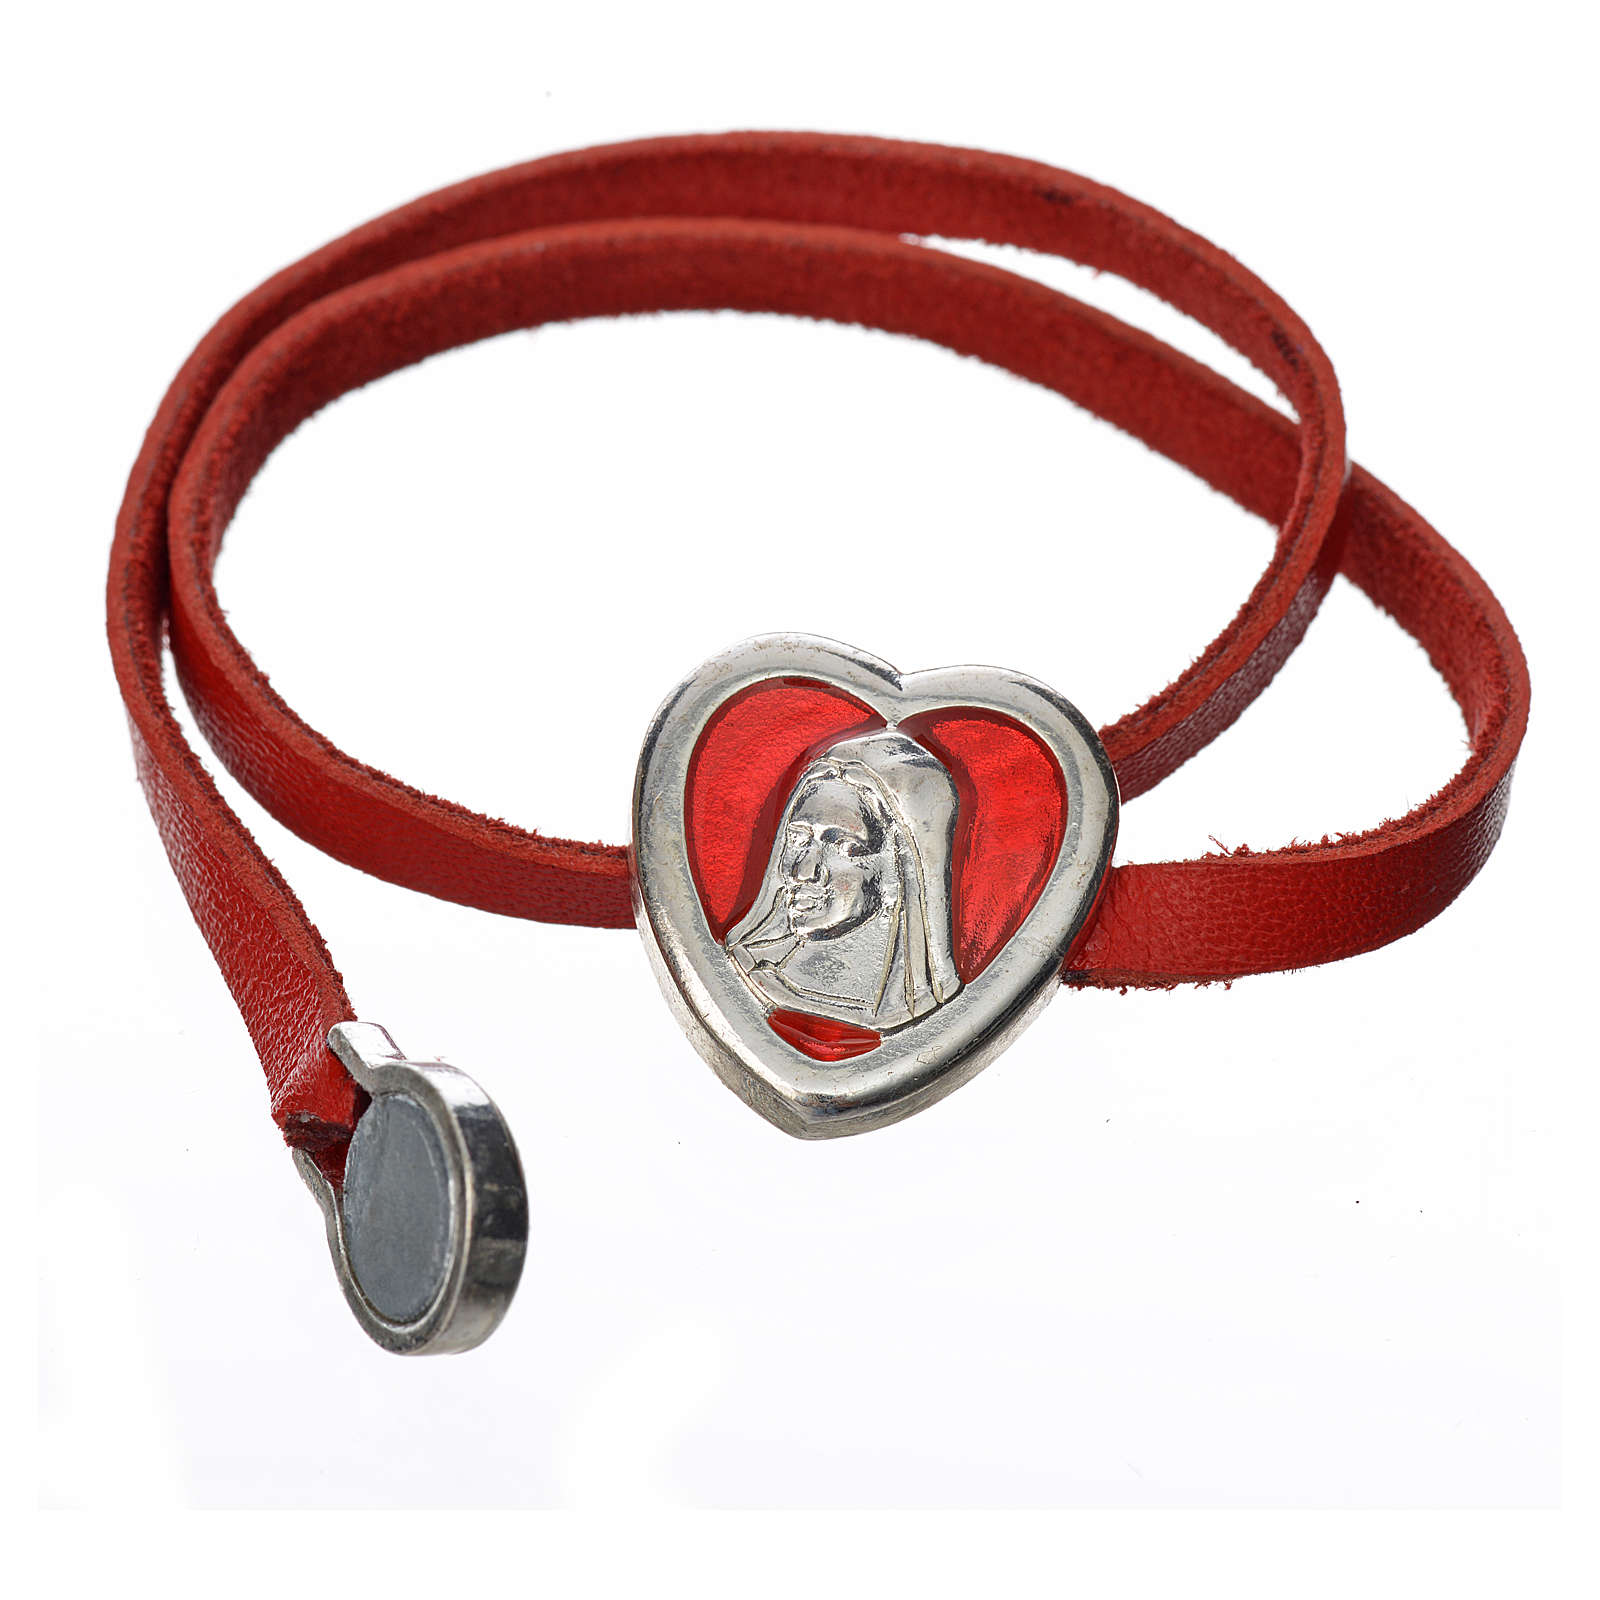 Bracelet in red leather with Virgin Mary pendant 4